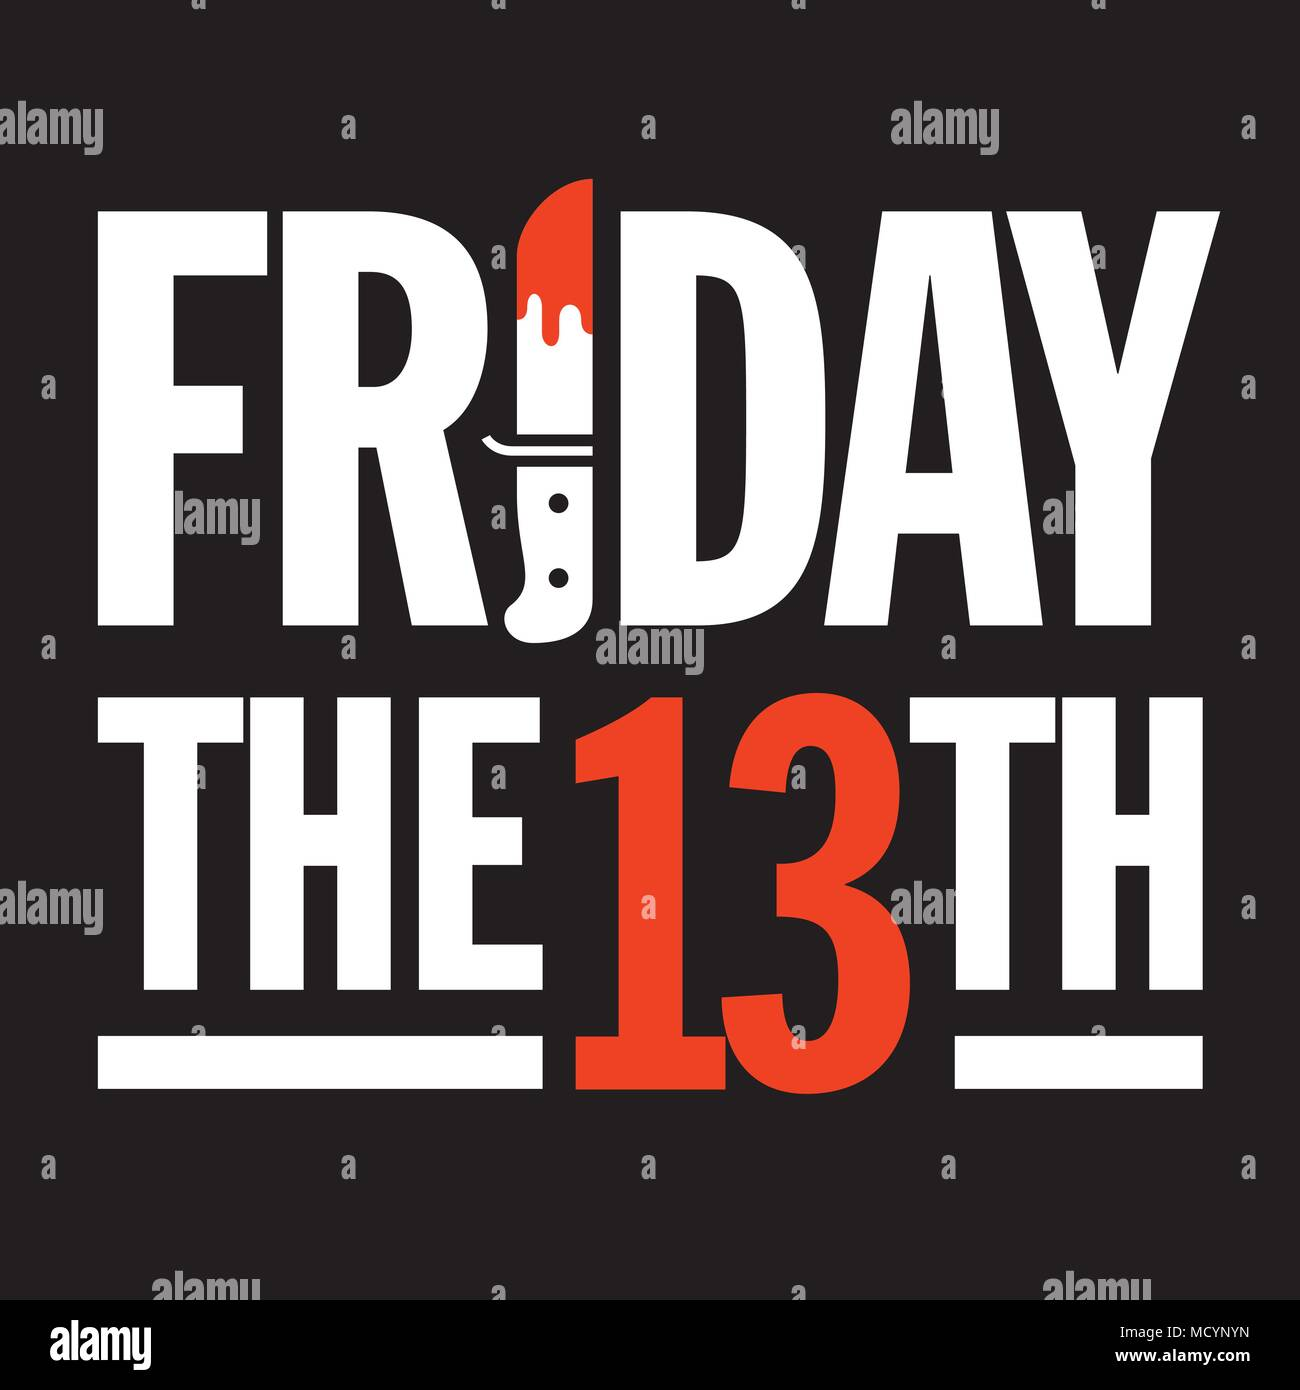 Friday 13th Vector Design. Great graphic design element for Friday 13 social media posts and advertising with bloody dagger making the I in Friday. - Stock Vector